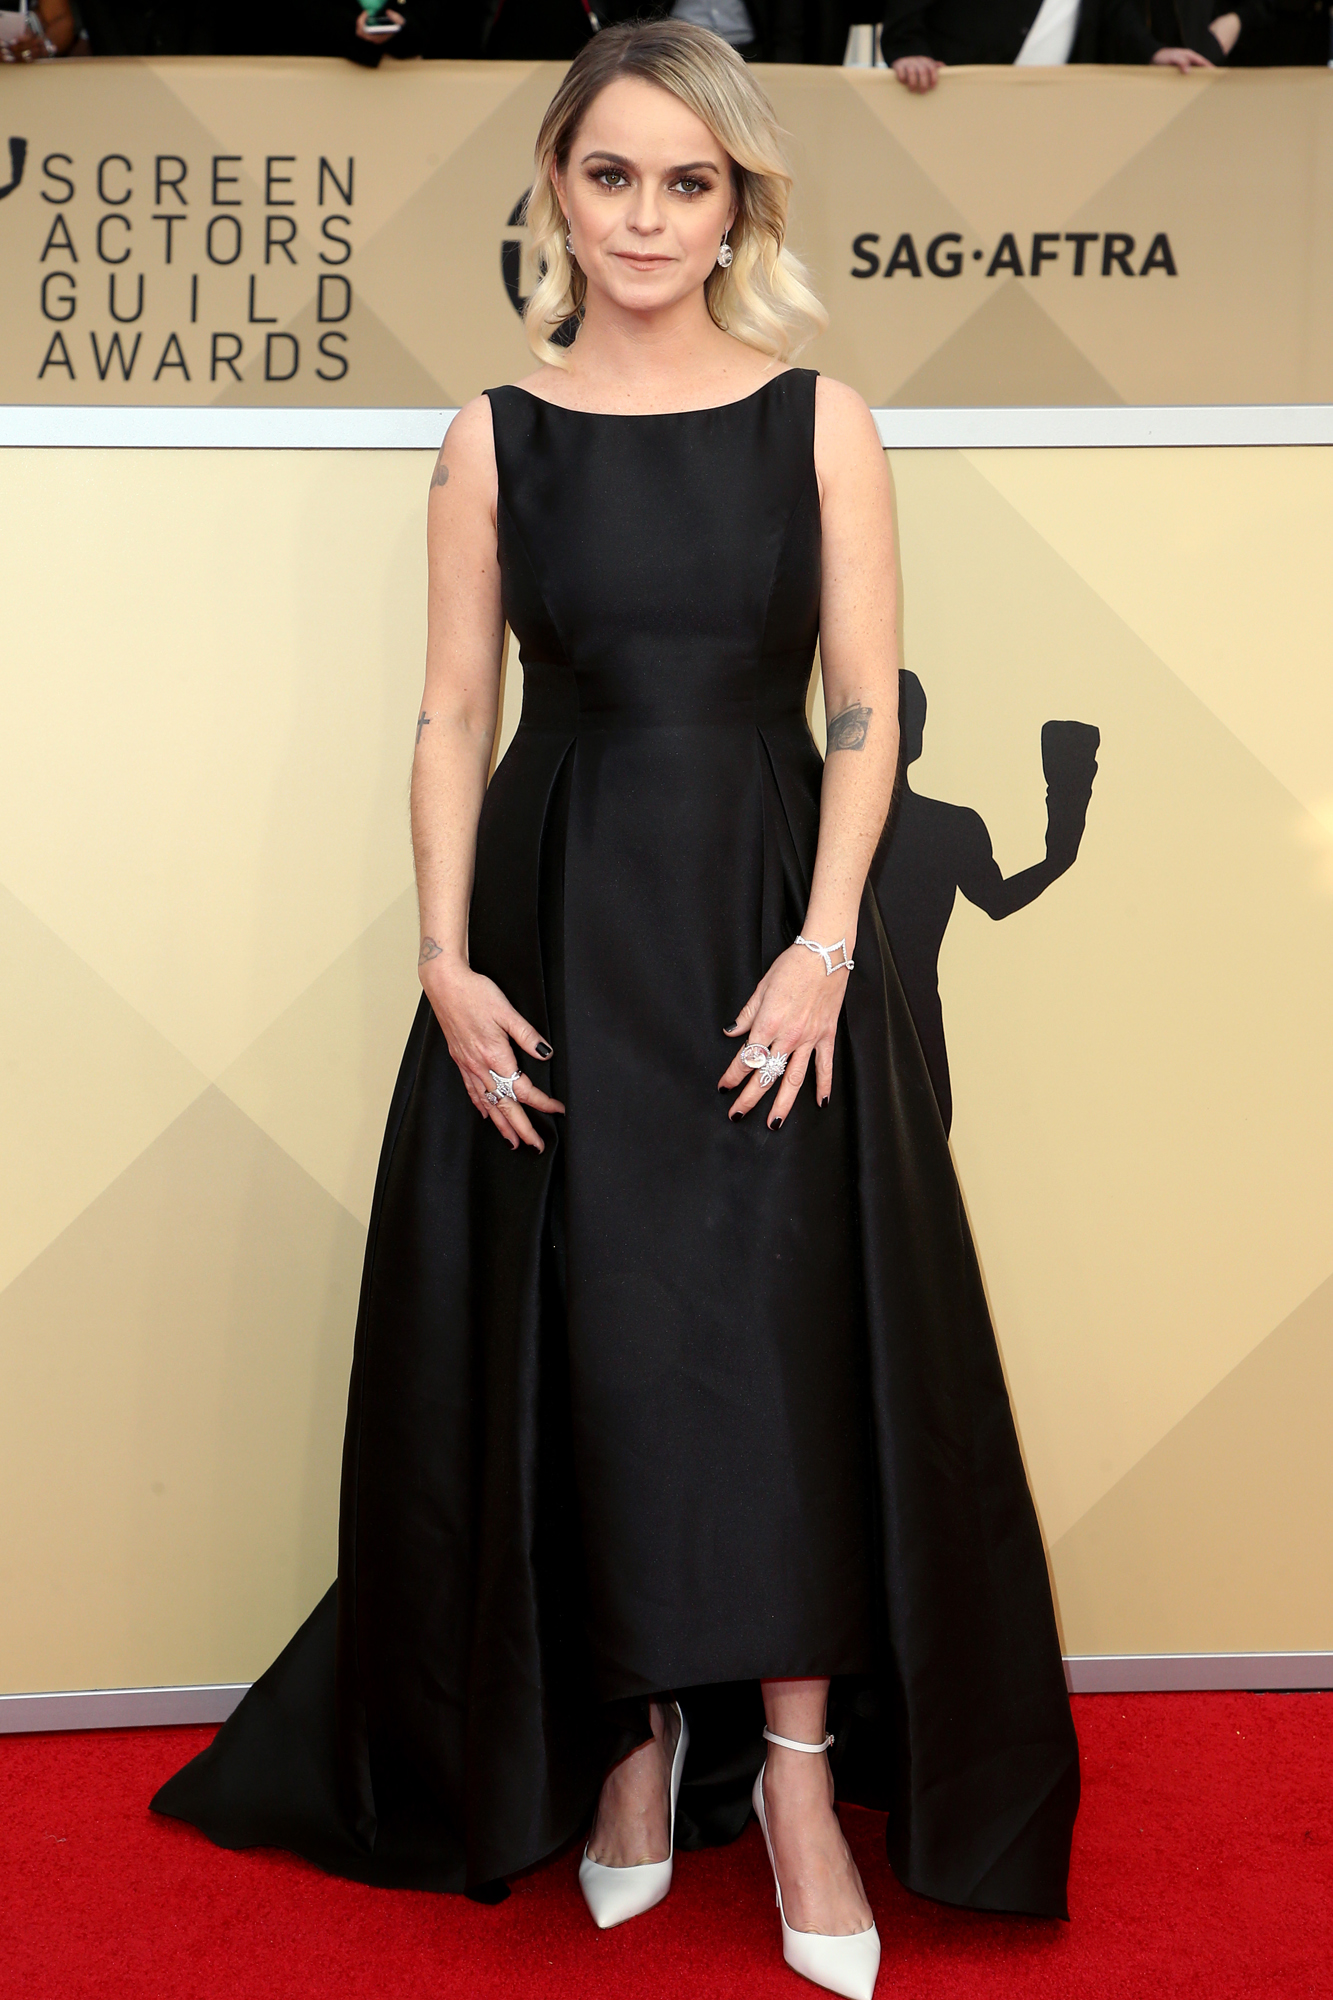 24th Annual Screen Actors Guild Awards, Arrivals, Los Angeles, USA - 21 Jan 2018